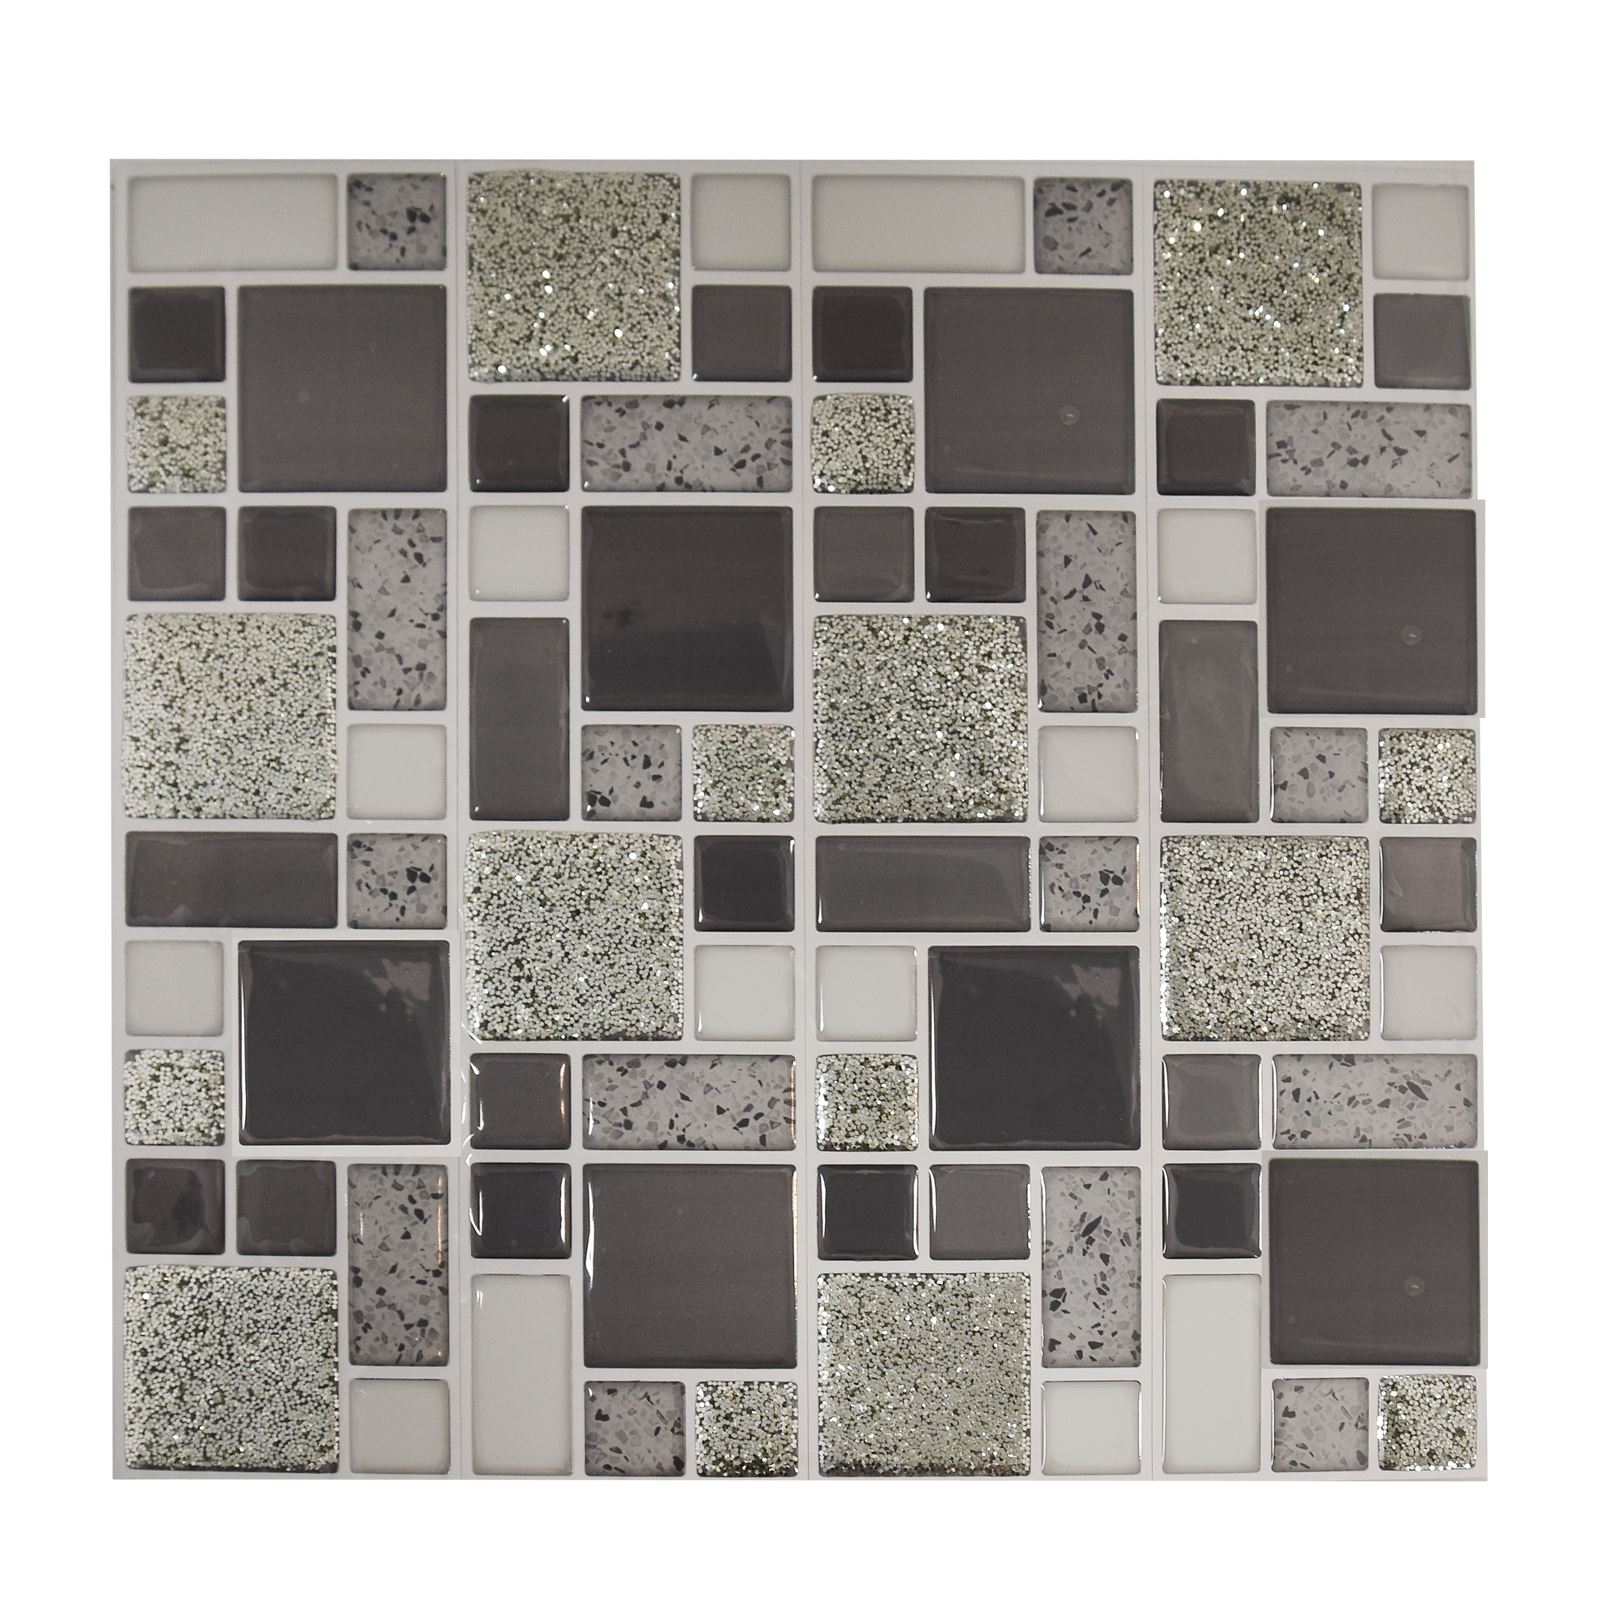 Self-Adhesive Mosaic Tile Stickers Bathroom Kitchen